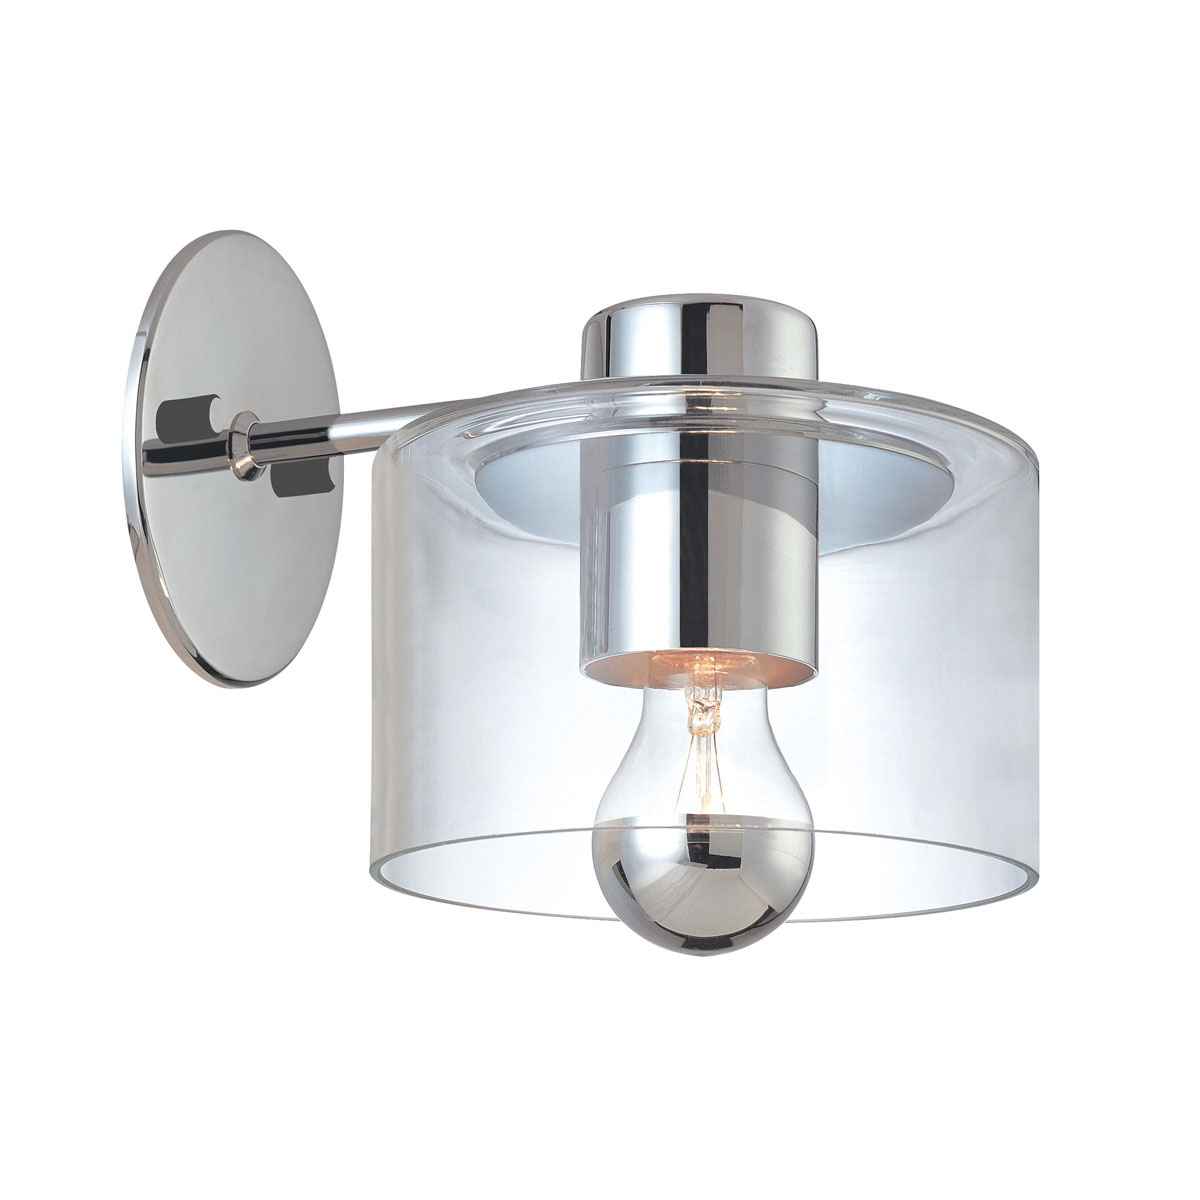 Transparence Sconce